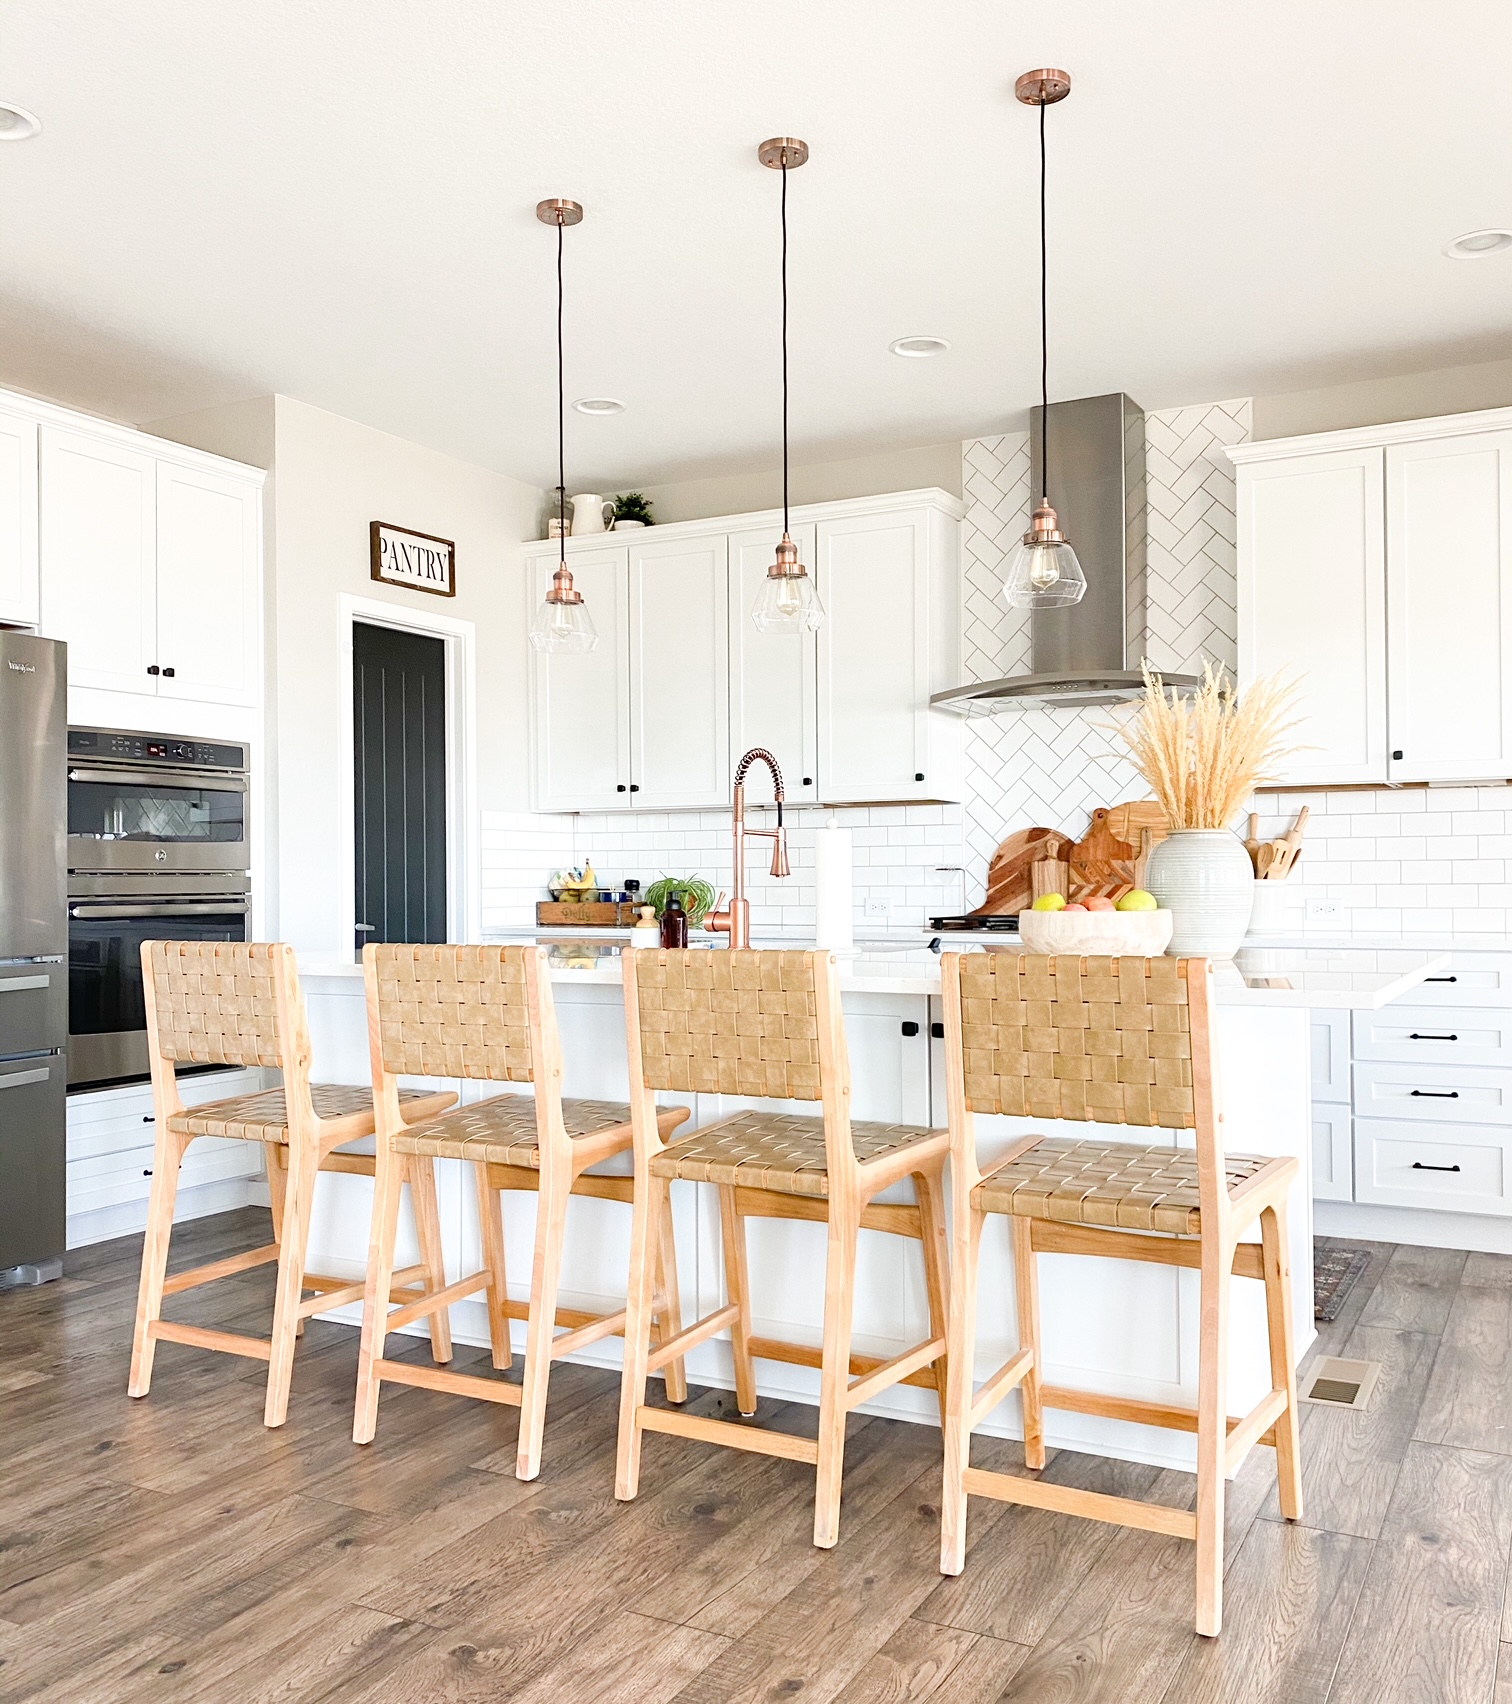 boho bar stools in white kitchen with copper accents